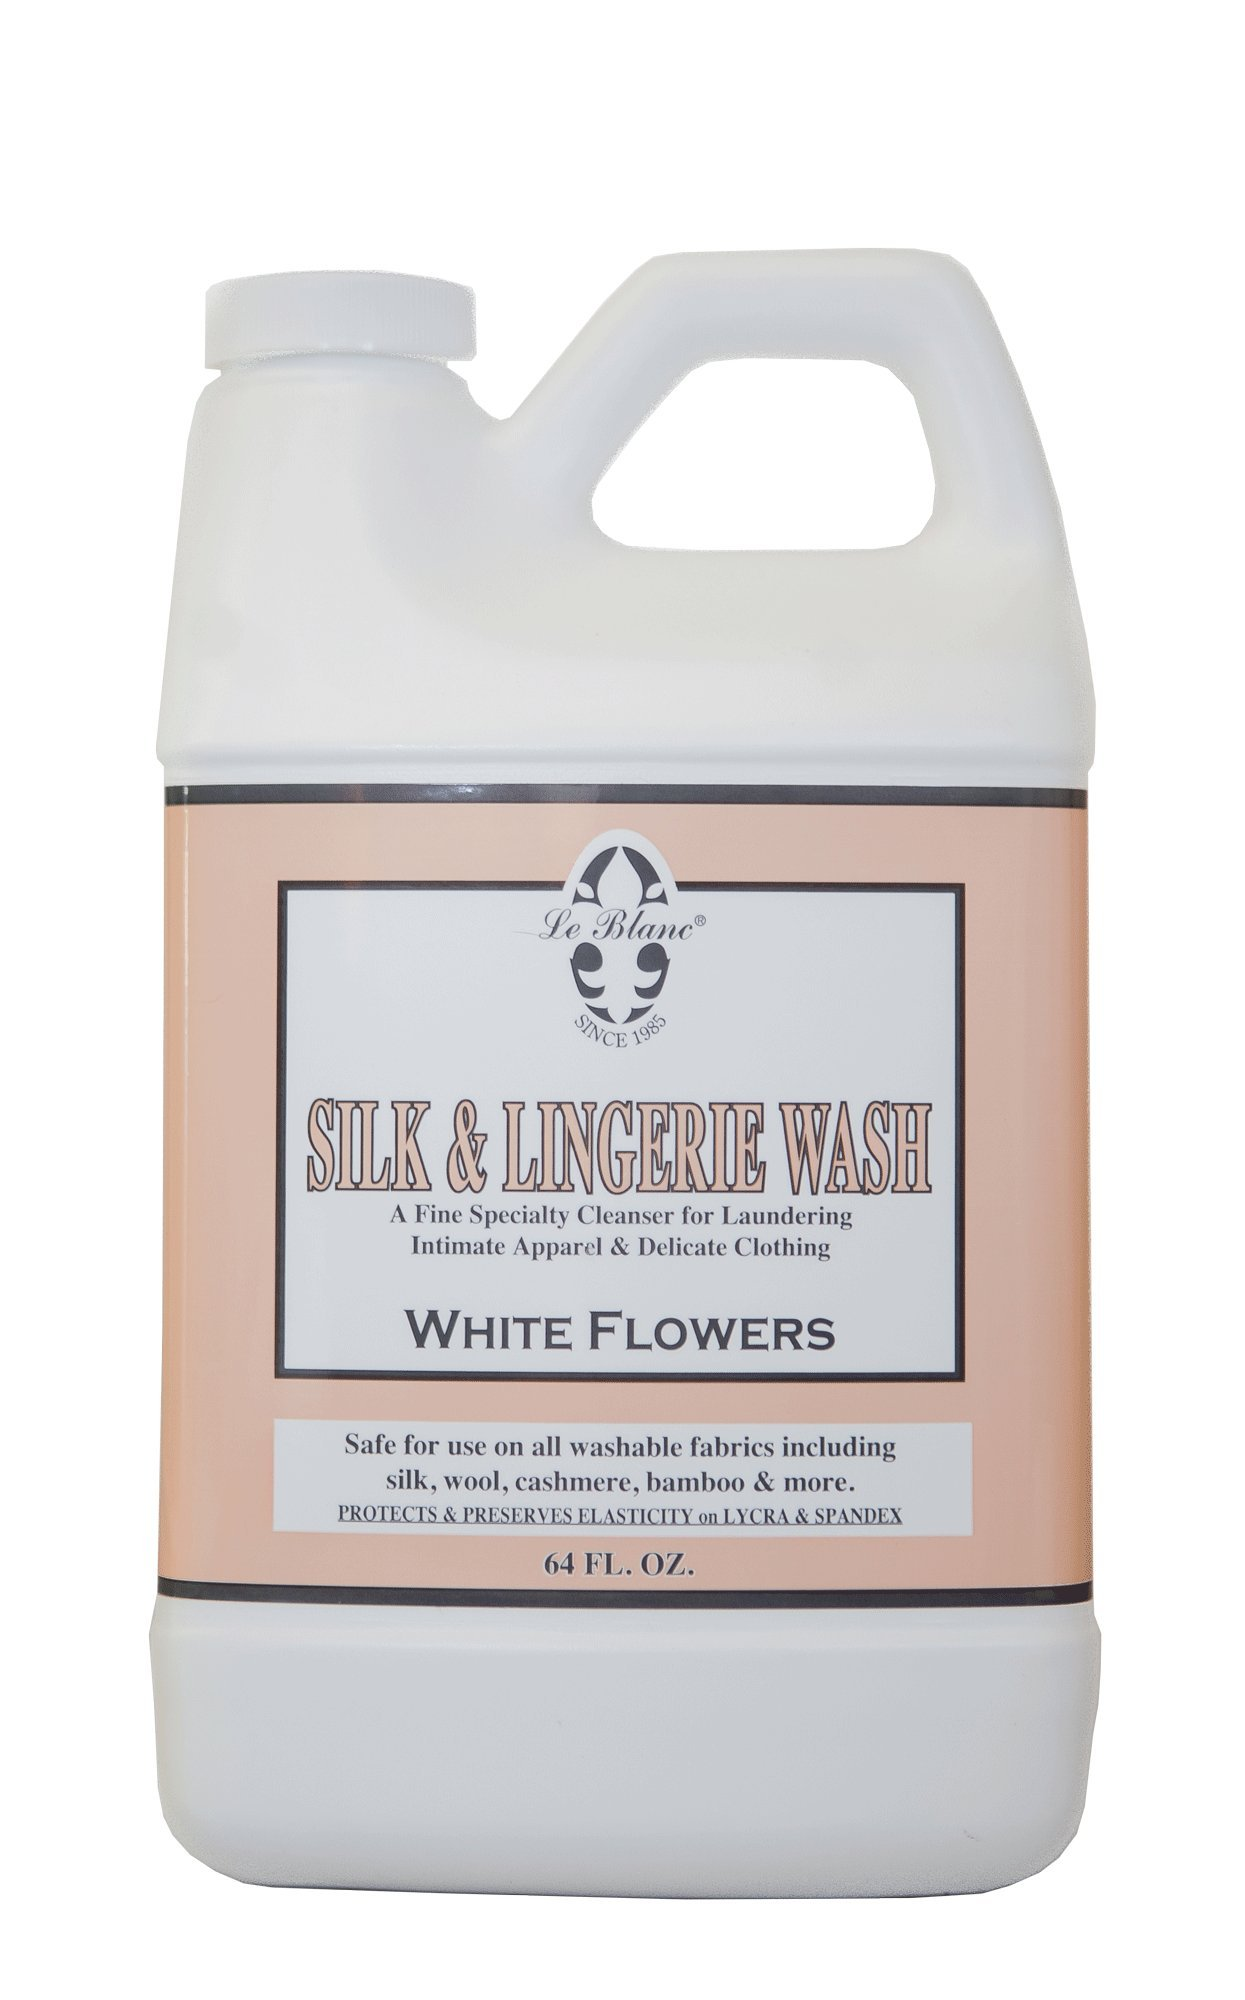 Le Blanc® White Flowers Silk & Lingerie Wash - 64 FL. OZ, One Pack by Le Blanc